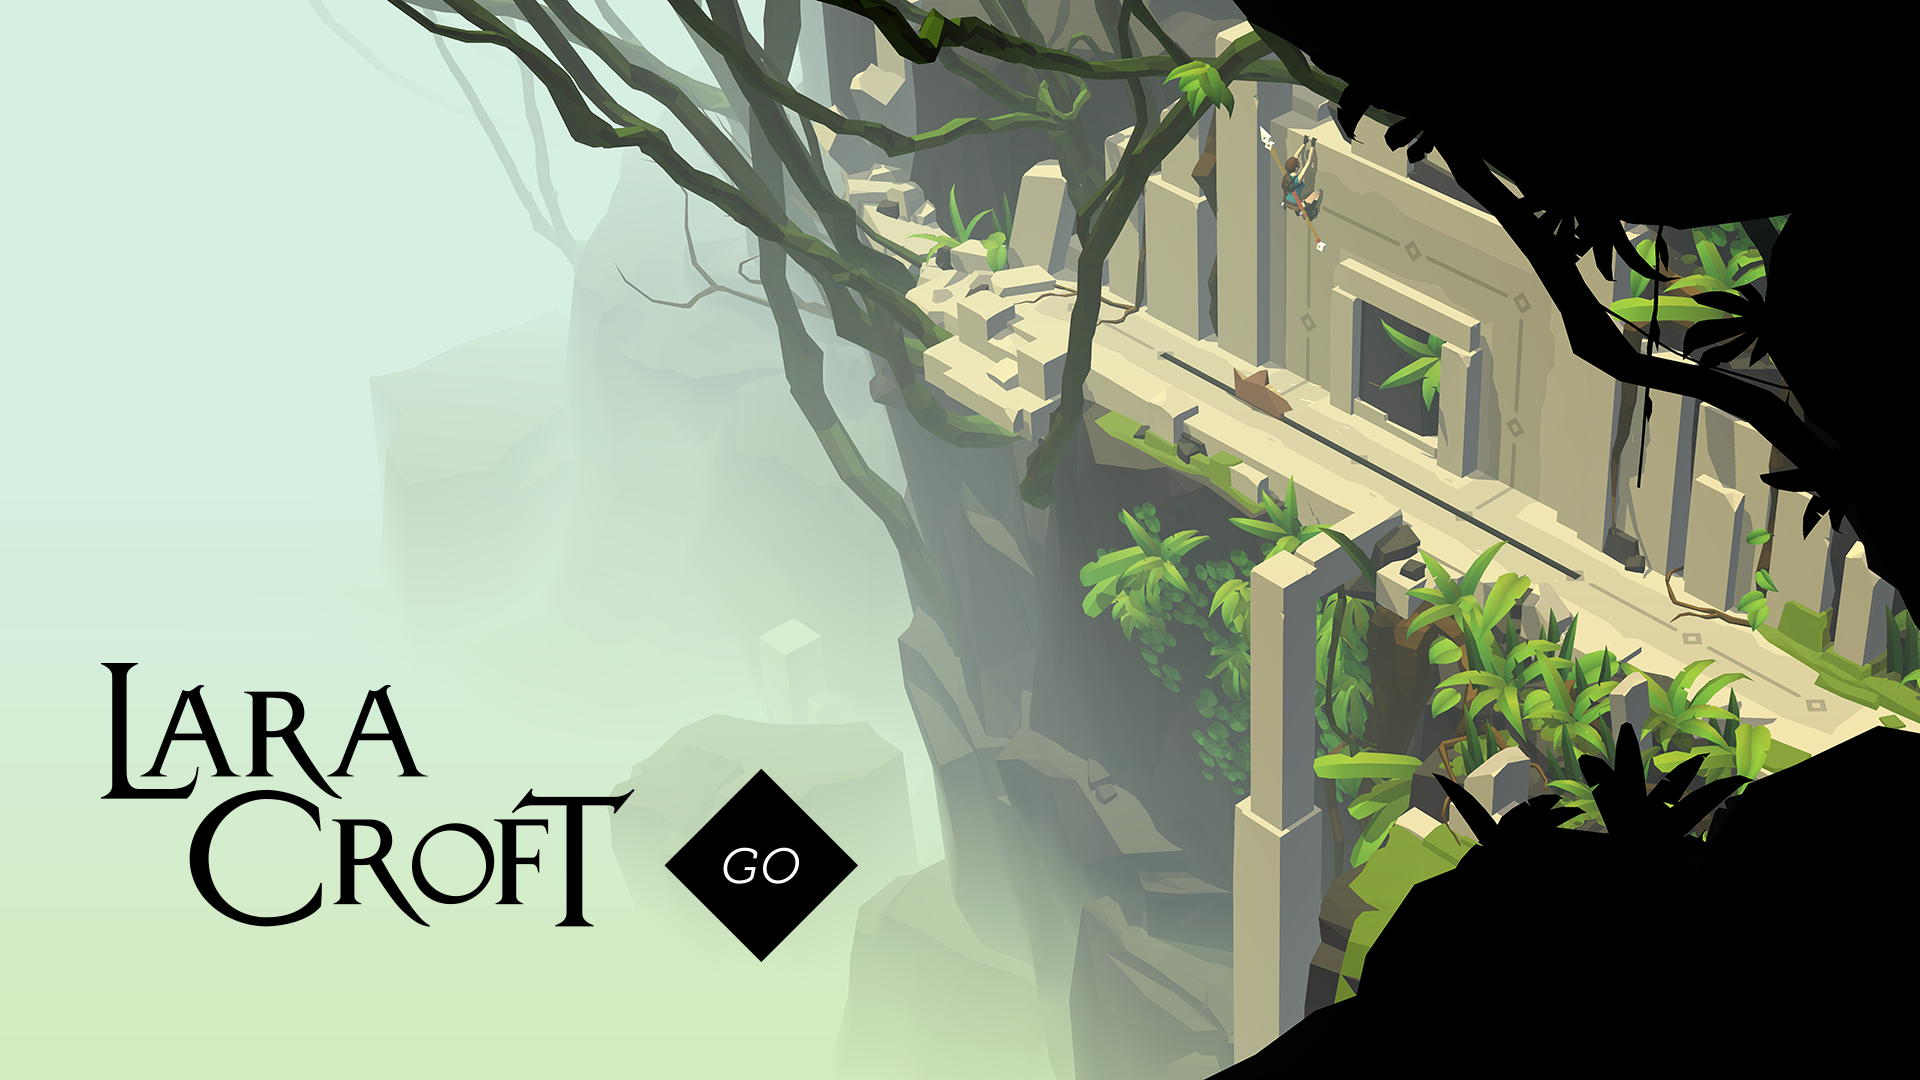 Lara Croft GO The GO Trilogy